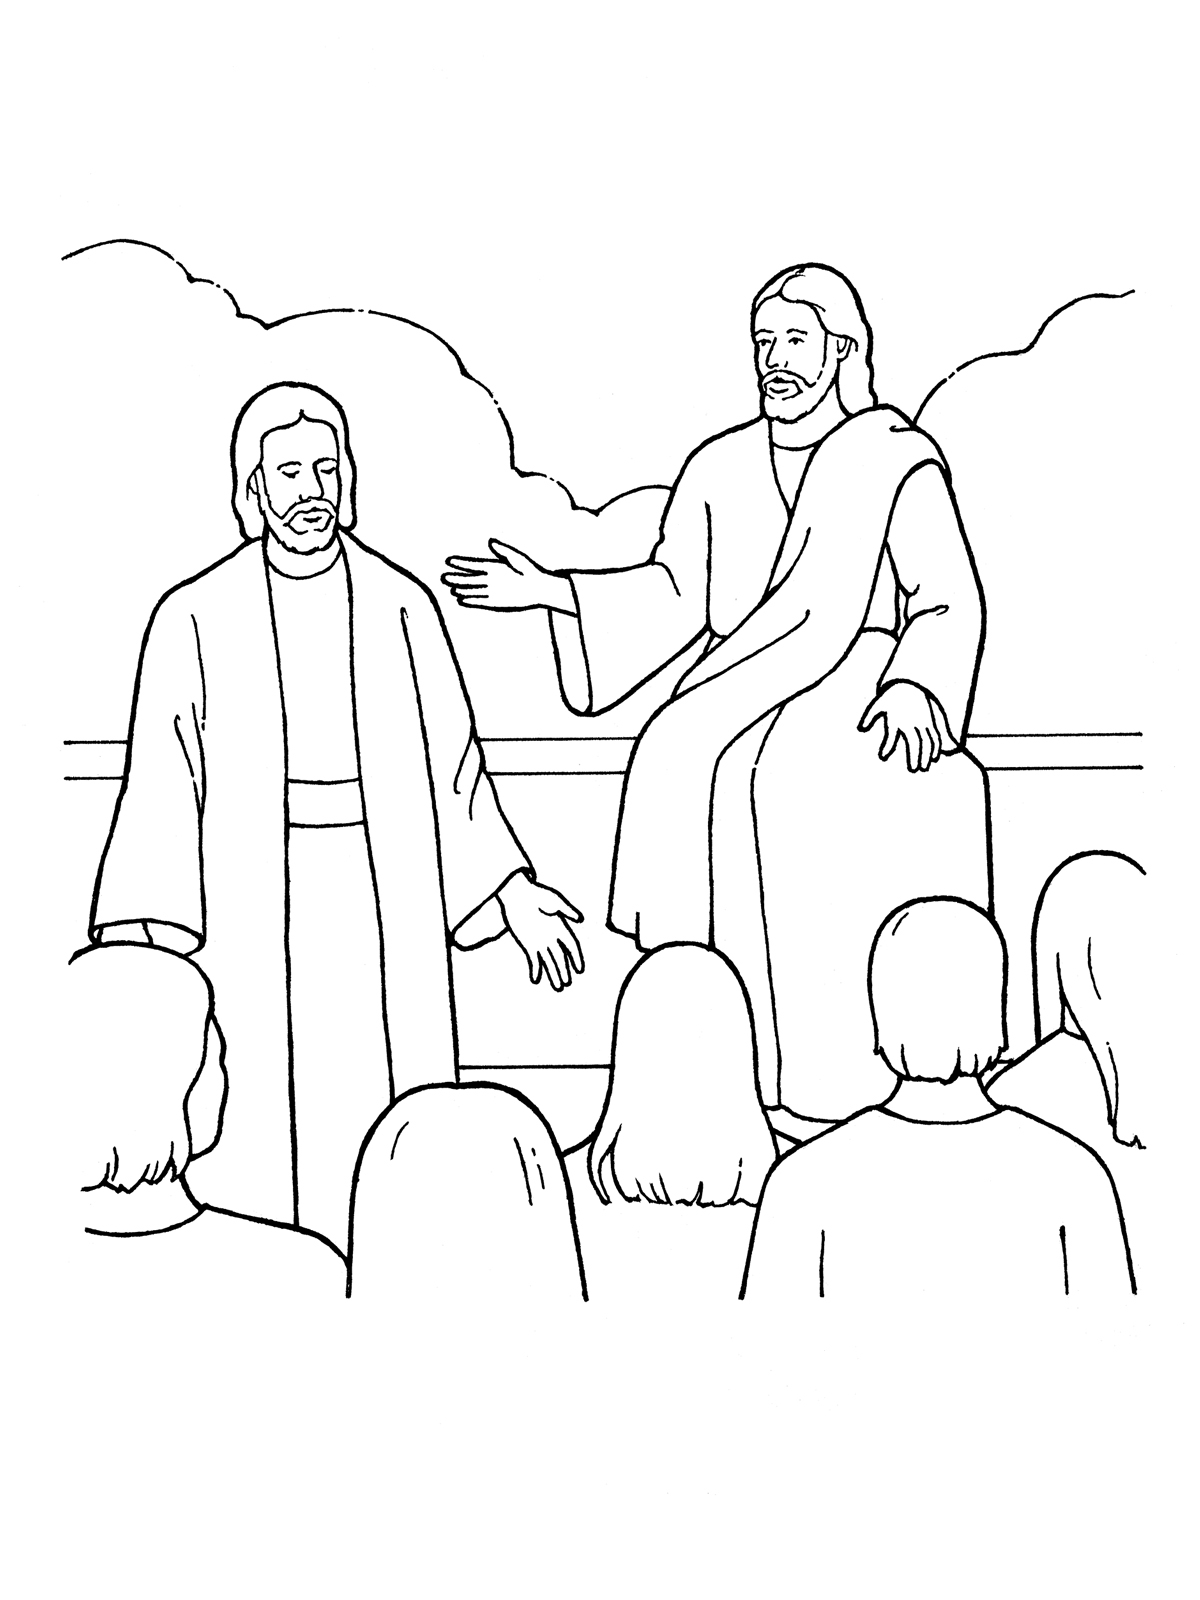 Lds Nursery Coloring Pages N2 Free Image - Lds-nursery-coloring-pages